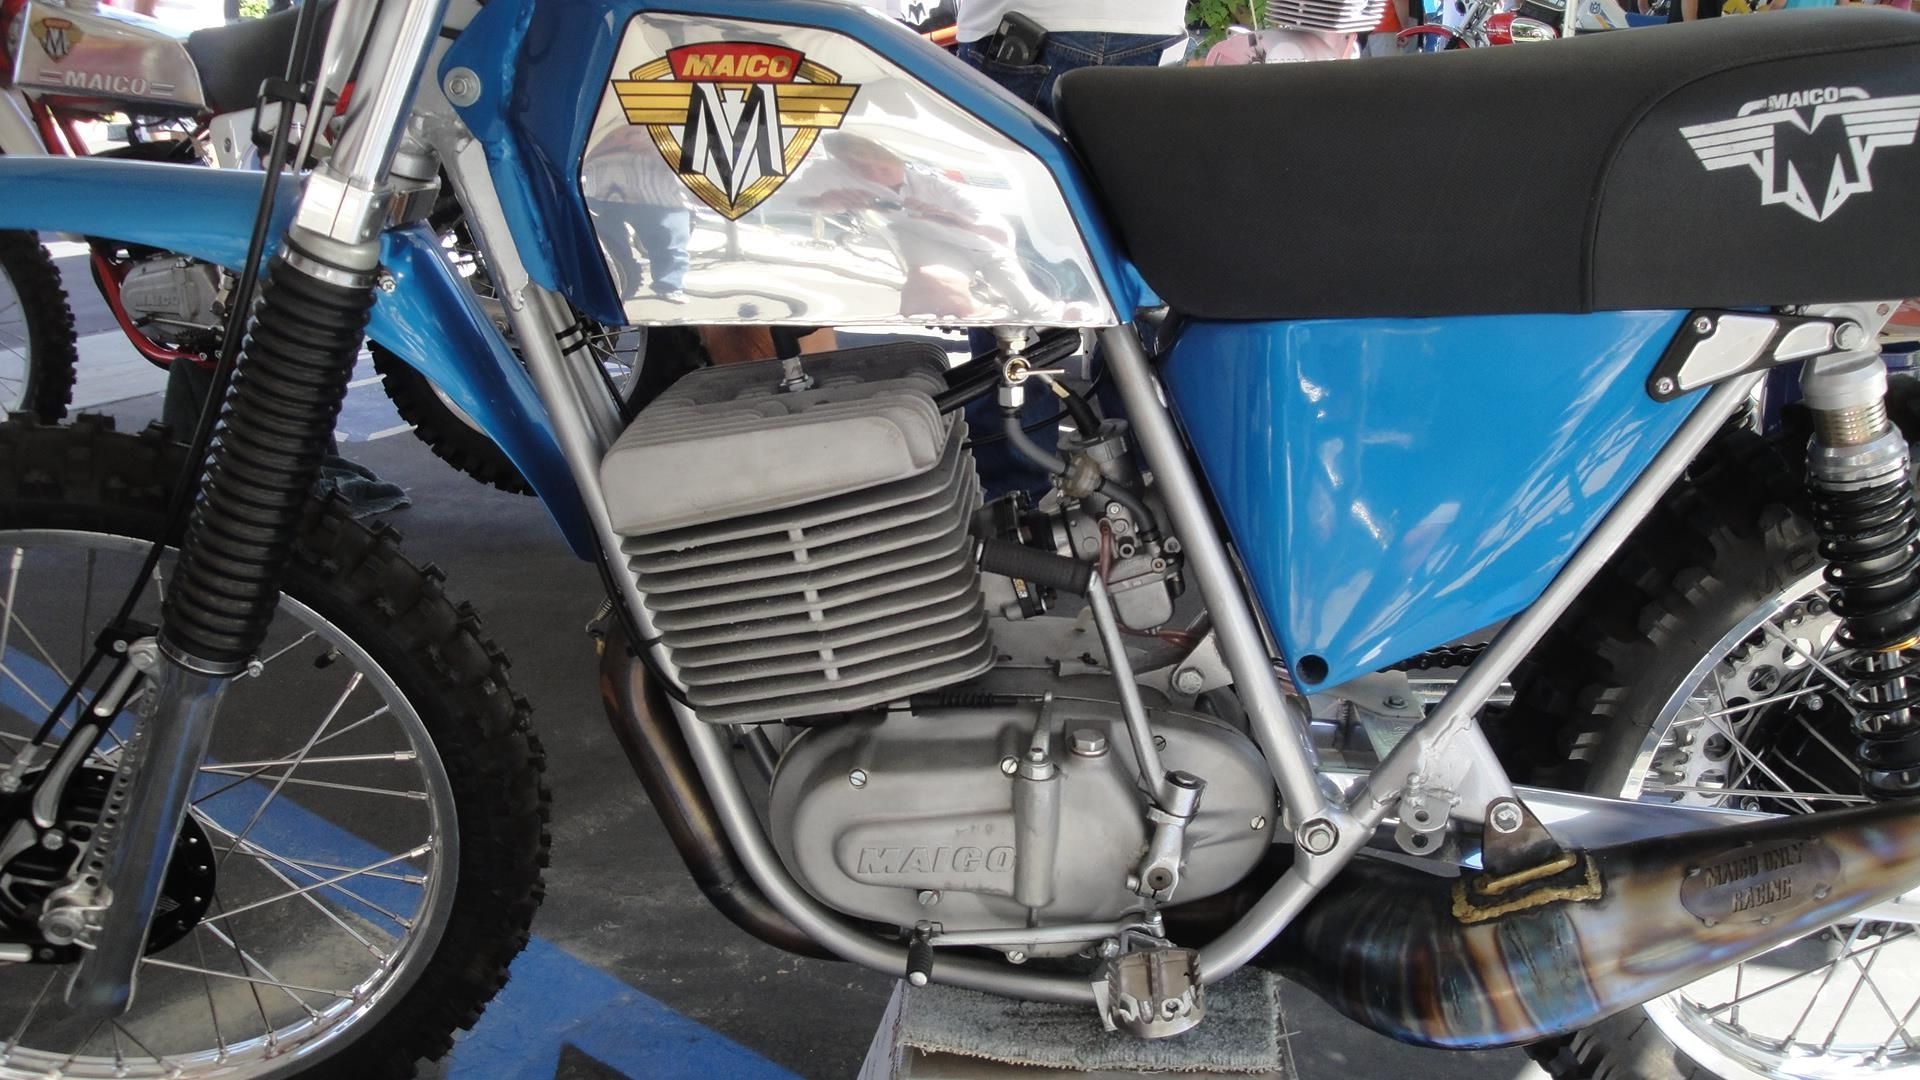 1974 Maico 501 Rebuilt By Eric Cook Of Maico Only Vintage Dirt